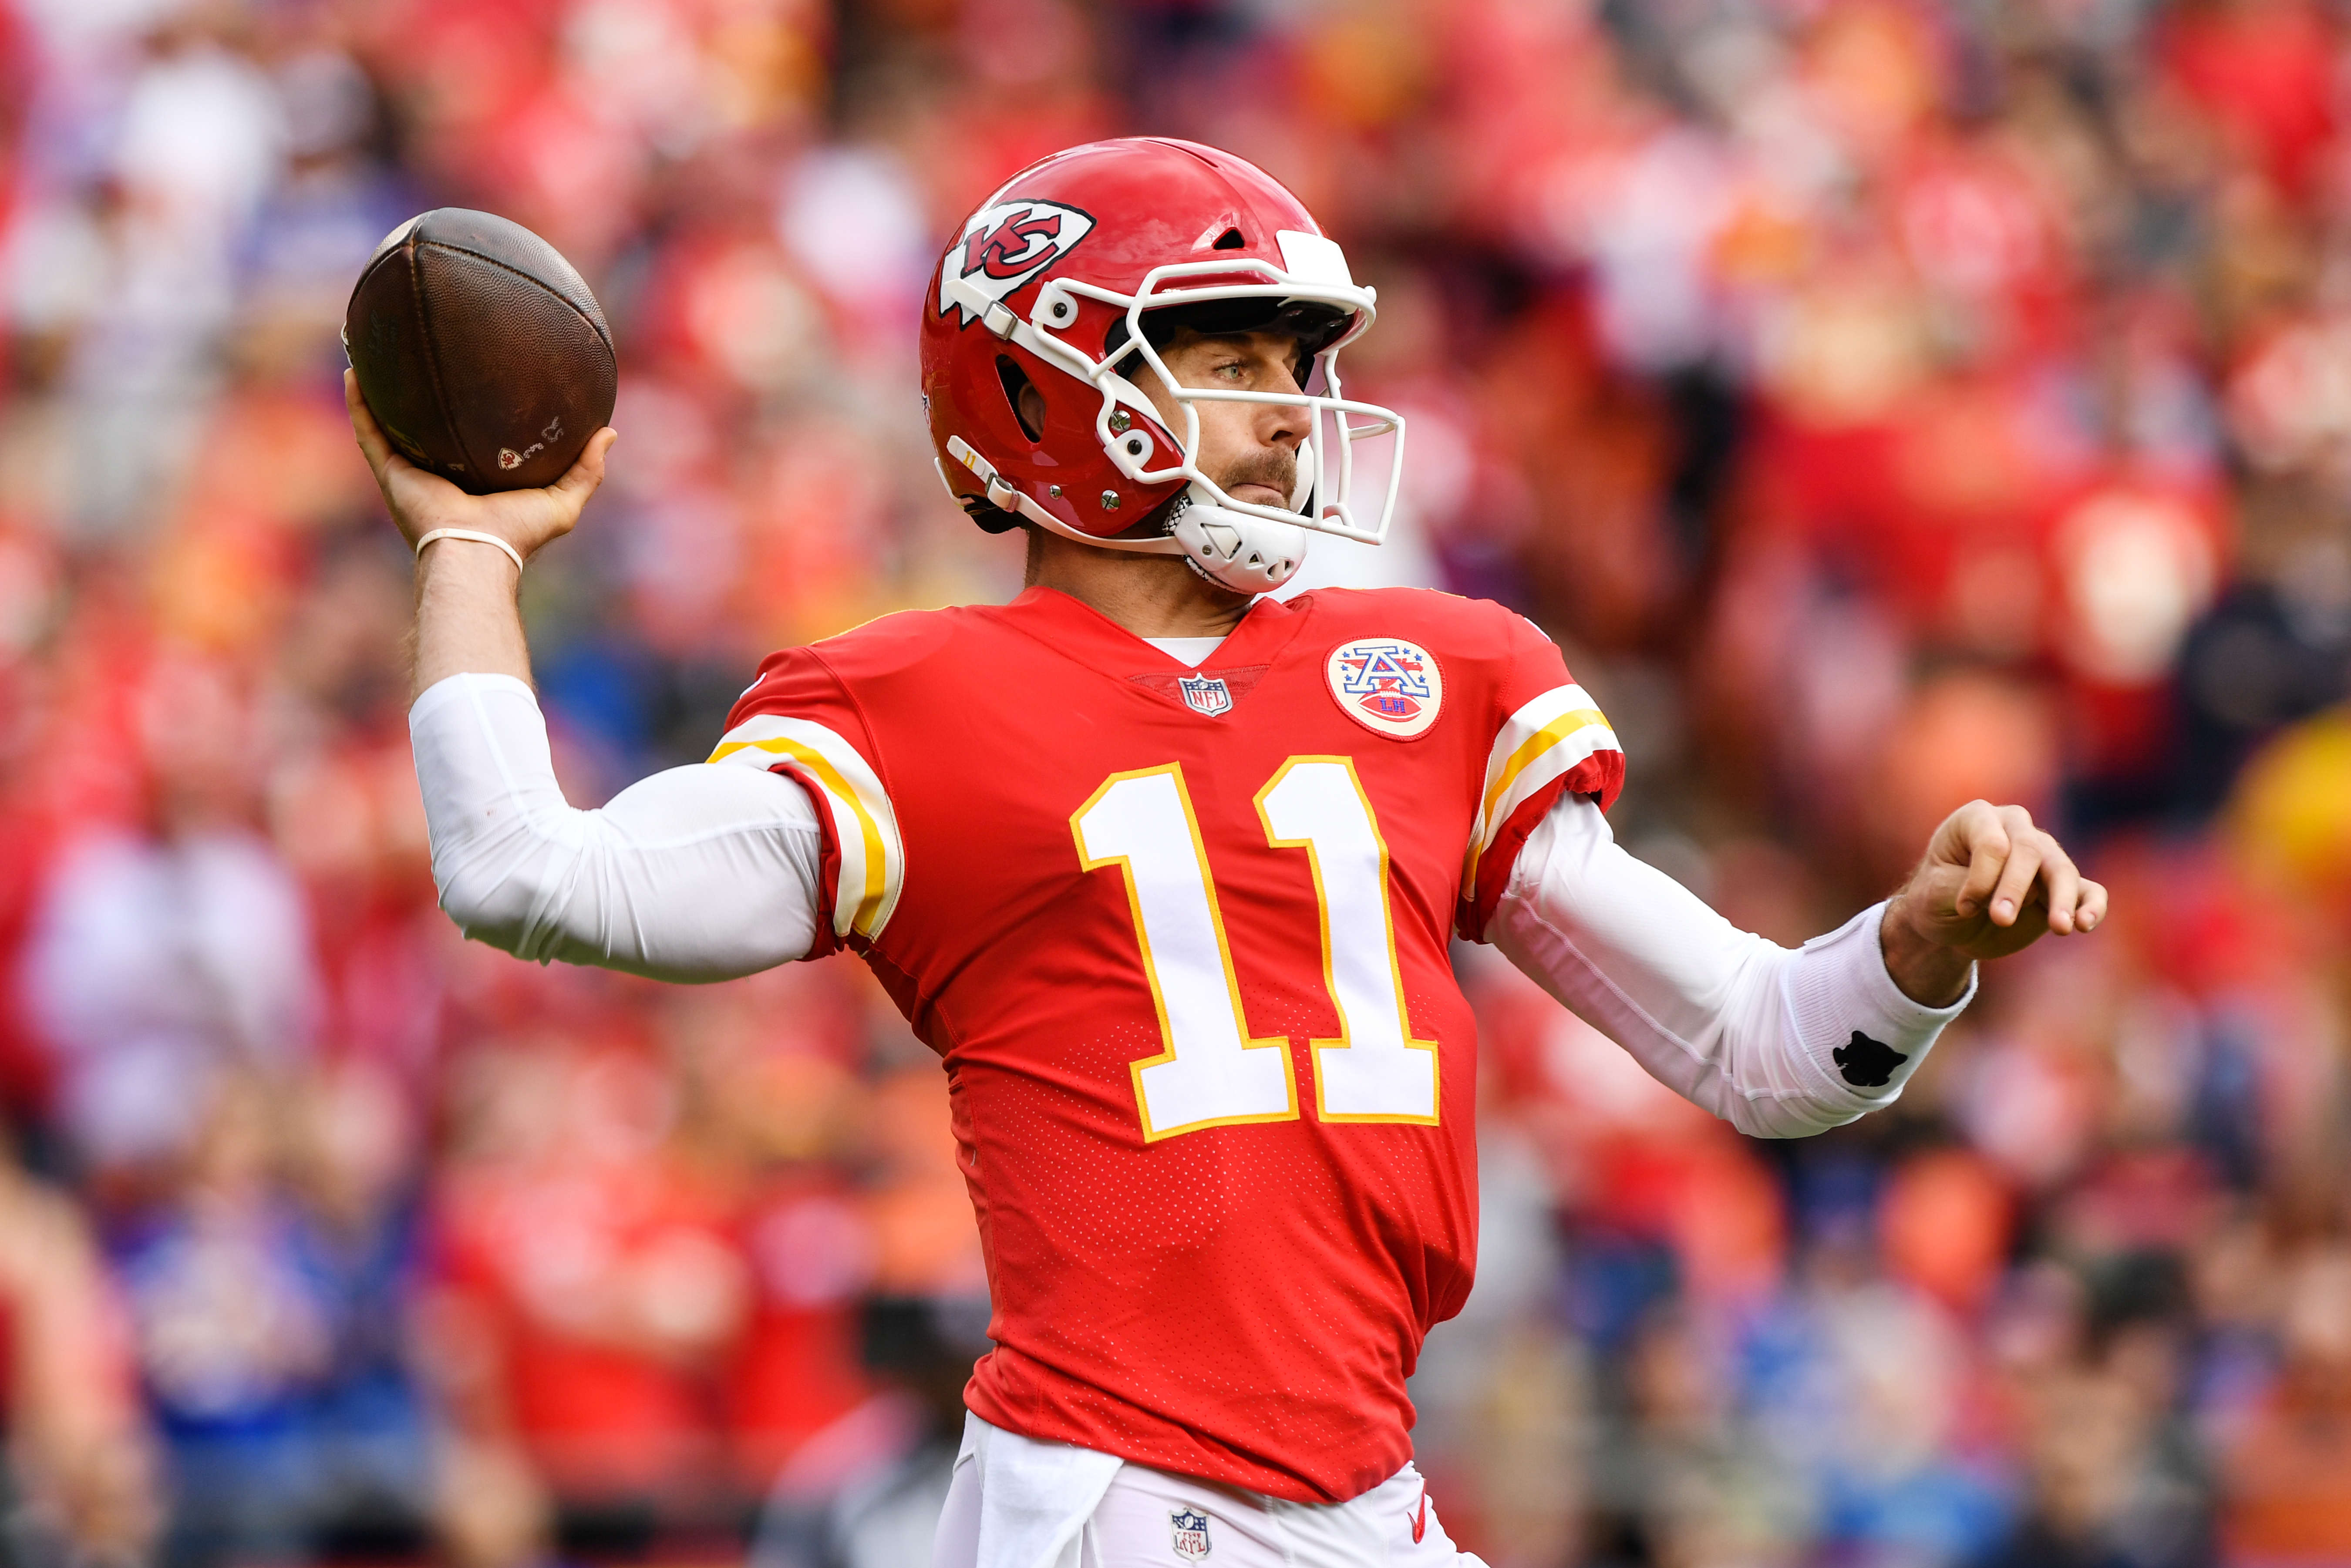 KANSAS CITY, MO - NOVEMBER 26: Quarterback Alex Smith #11 of the Kansas City Chiefs throws a pass against the Buffalo Bills during the first quarter of the game at Arrowhead Stadium on November 26, 2017 in Kansas City, Missouri. (Photo by Jamie Squire/Getty Images)